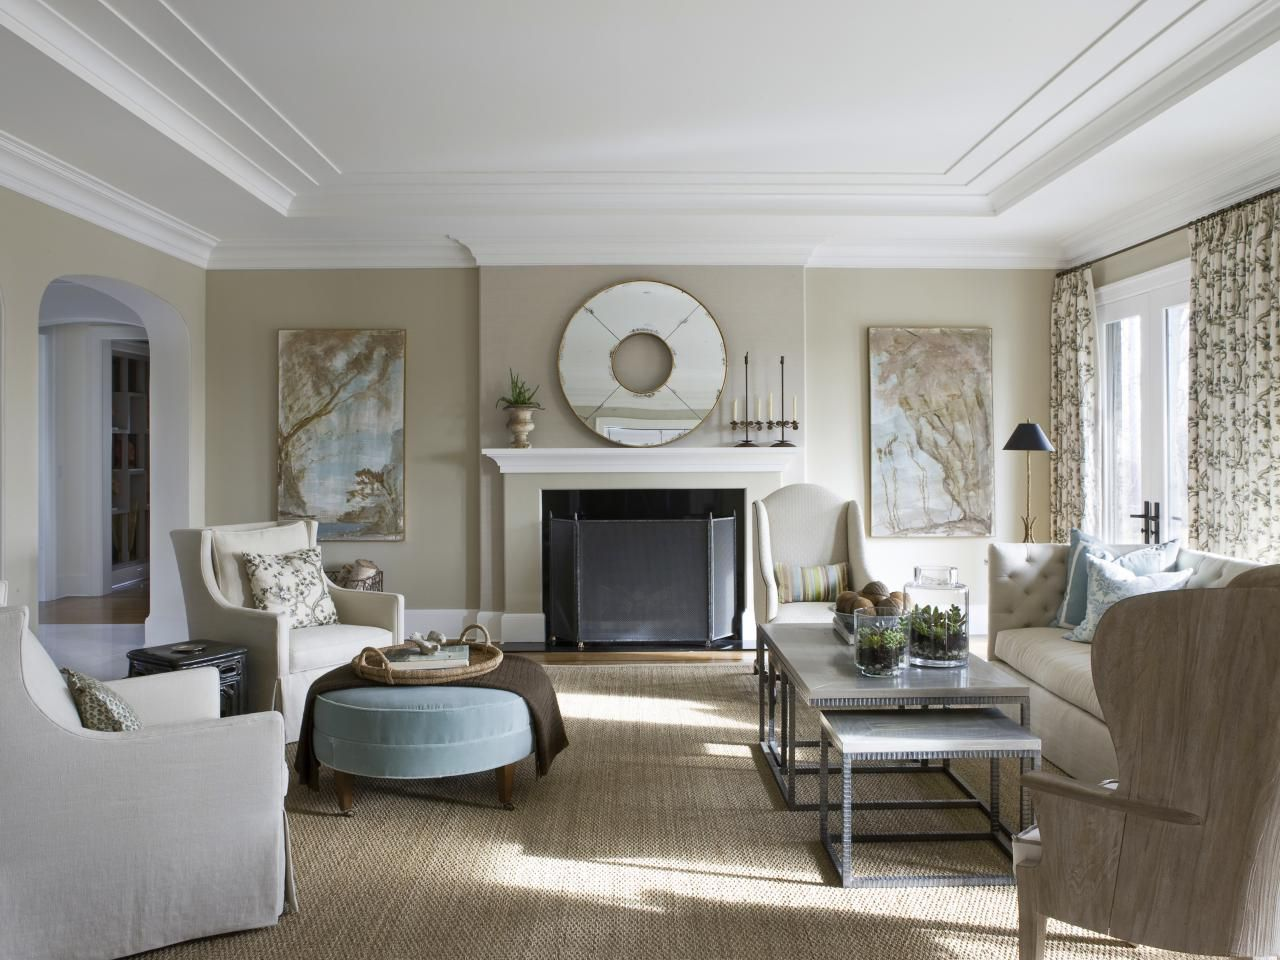 Living Room Vs Family Room What Is The Difference With Images